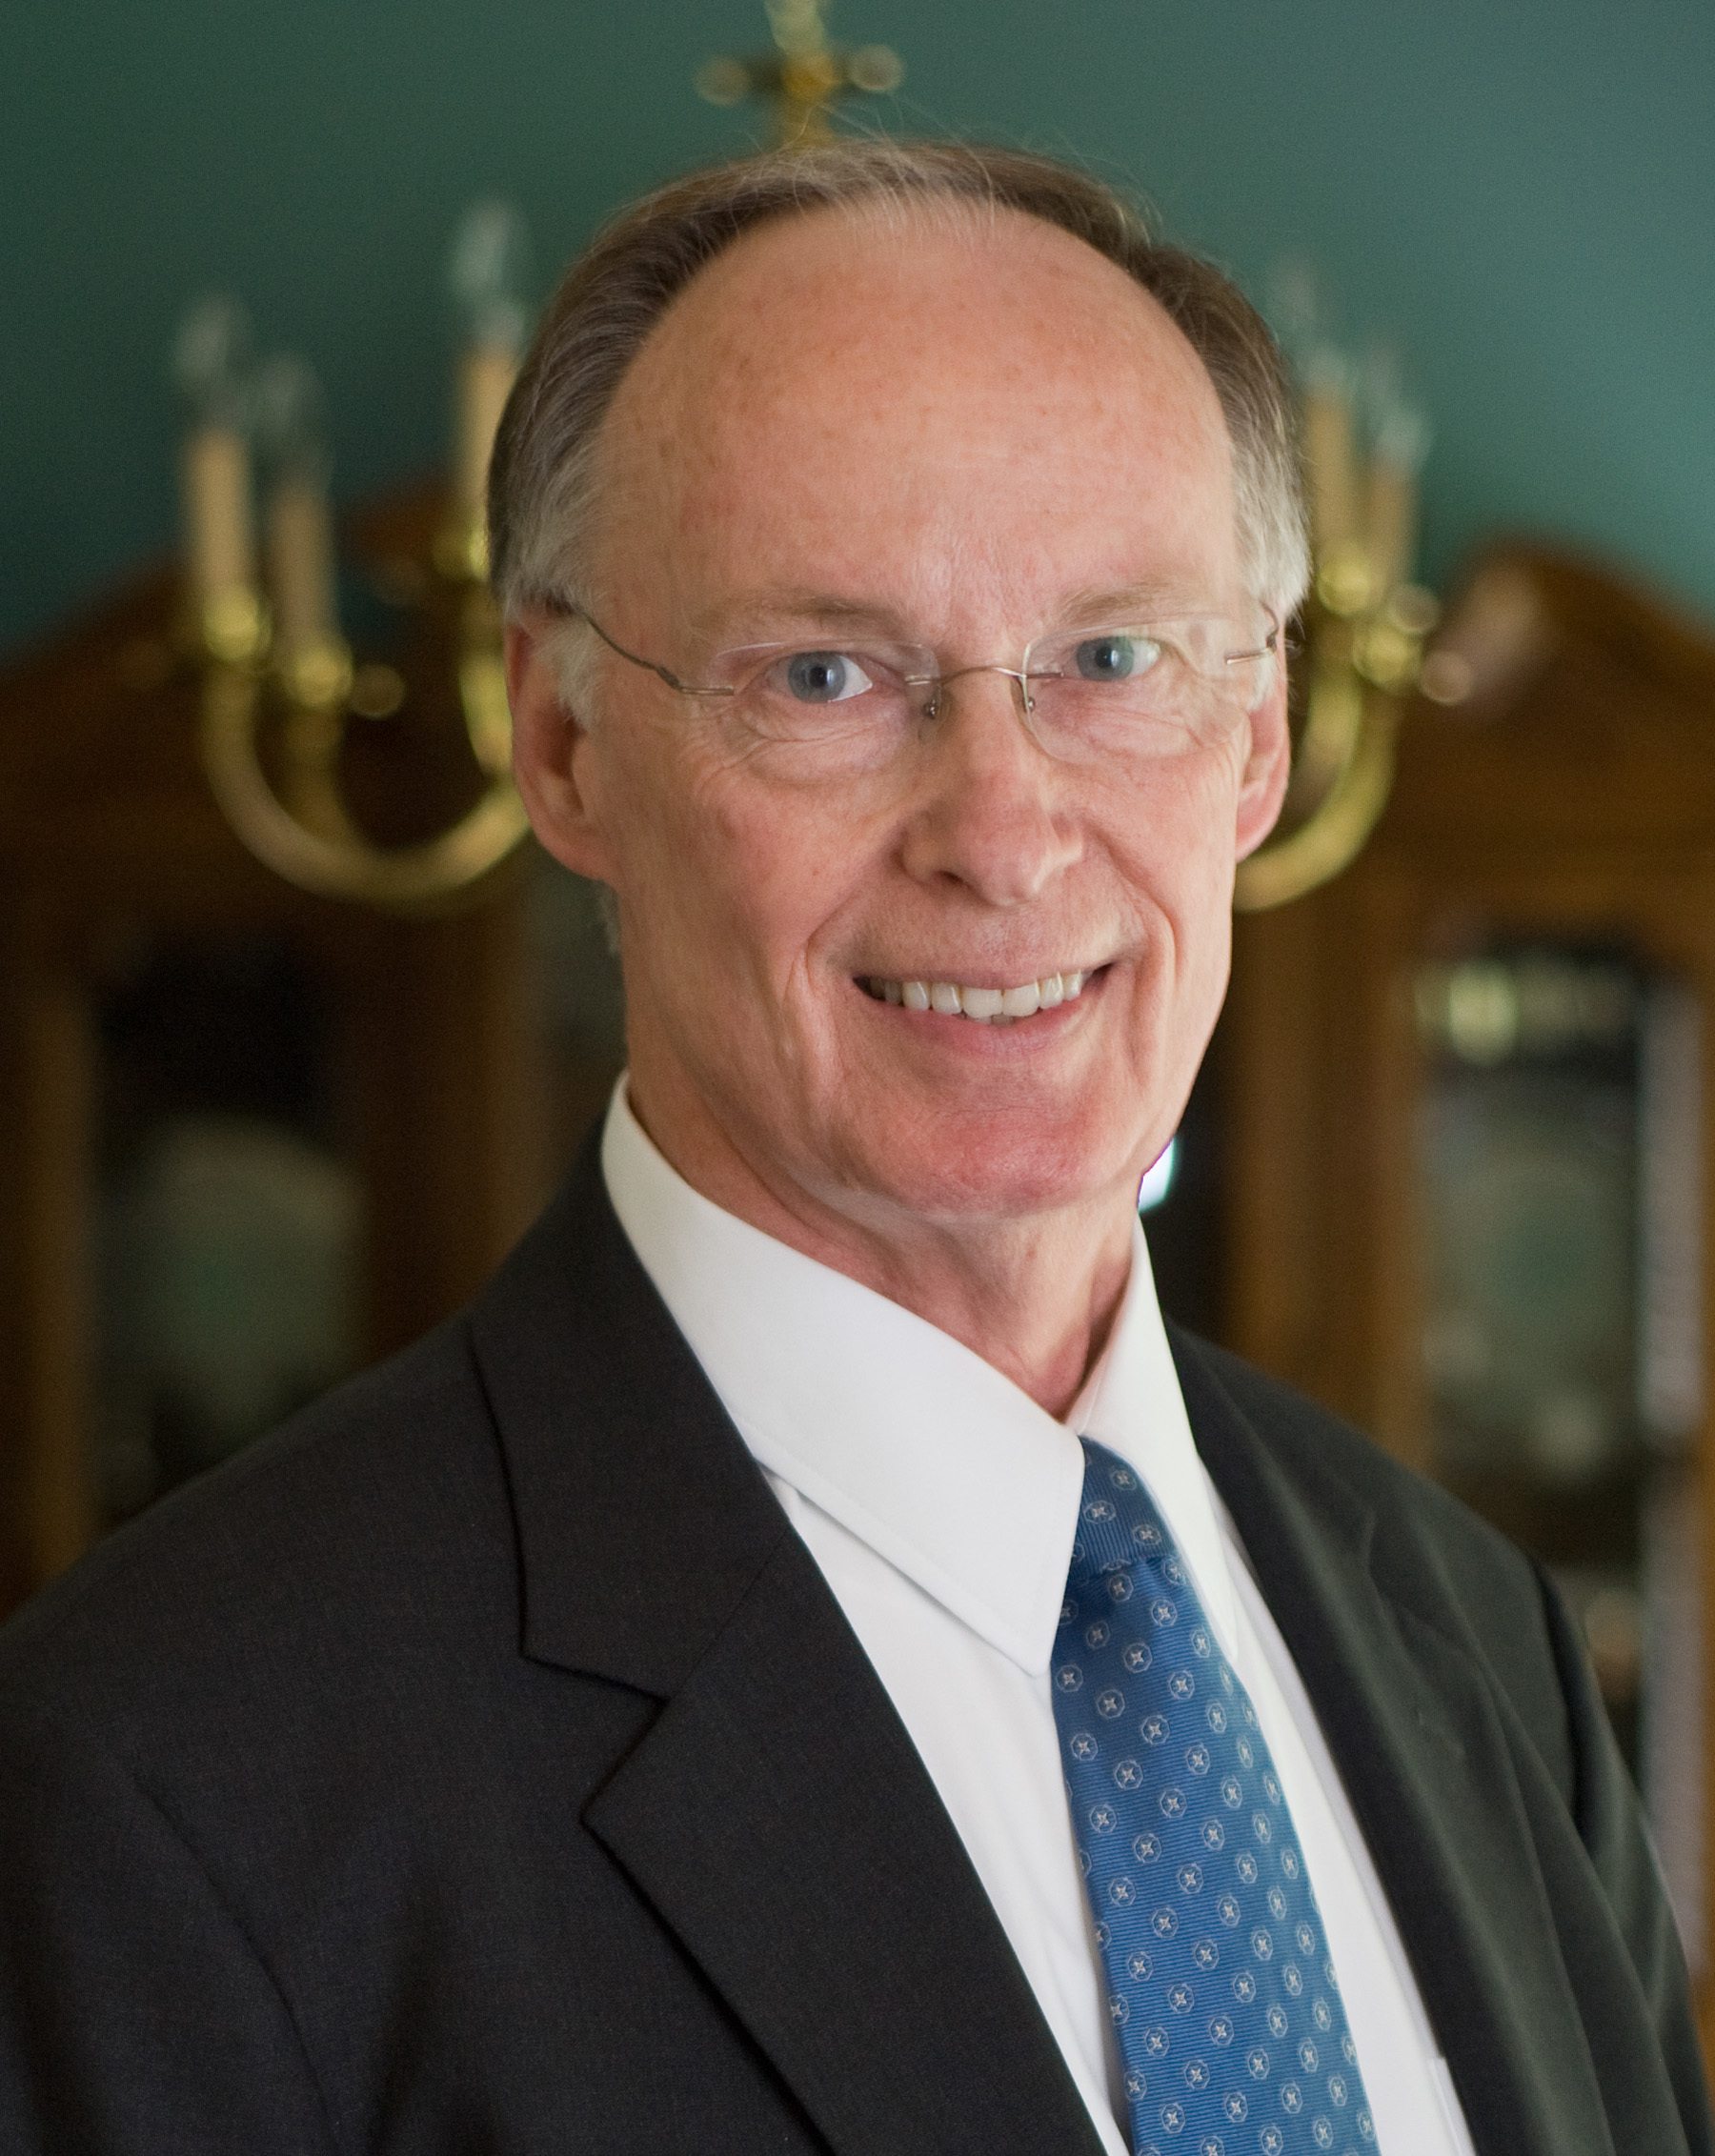 The 77-year old son of father (?) and mother(?) Robert Bentley in 2020 photo. Robert Bentley earned a million dollar salary - leaving the net worth at 3 million in 2020